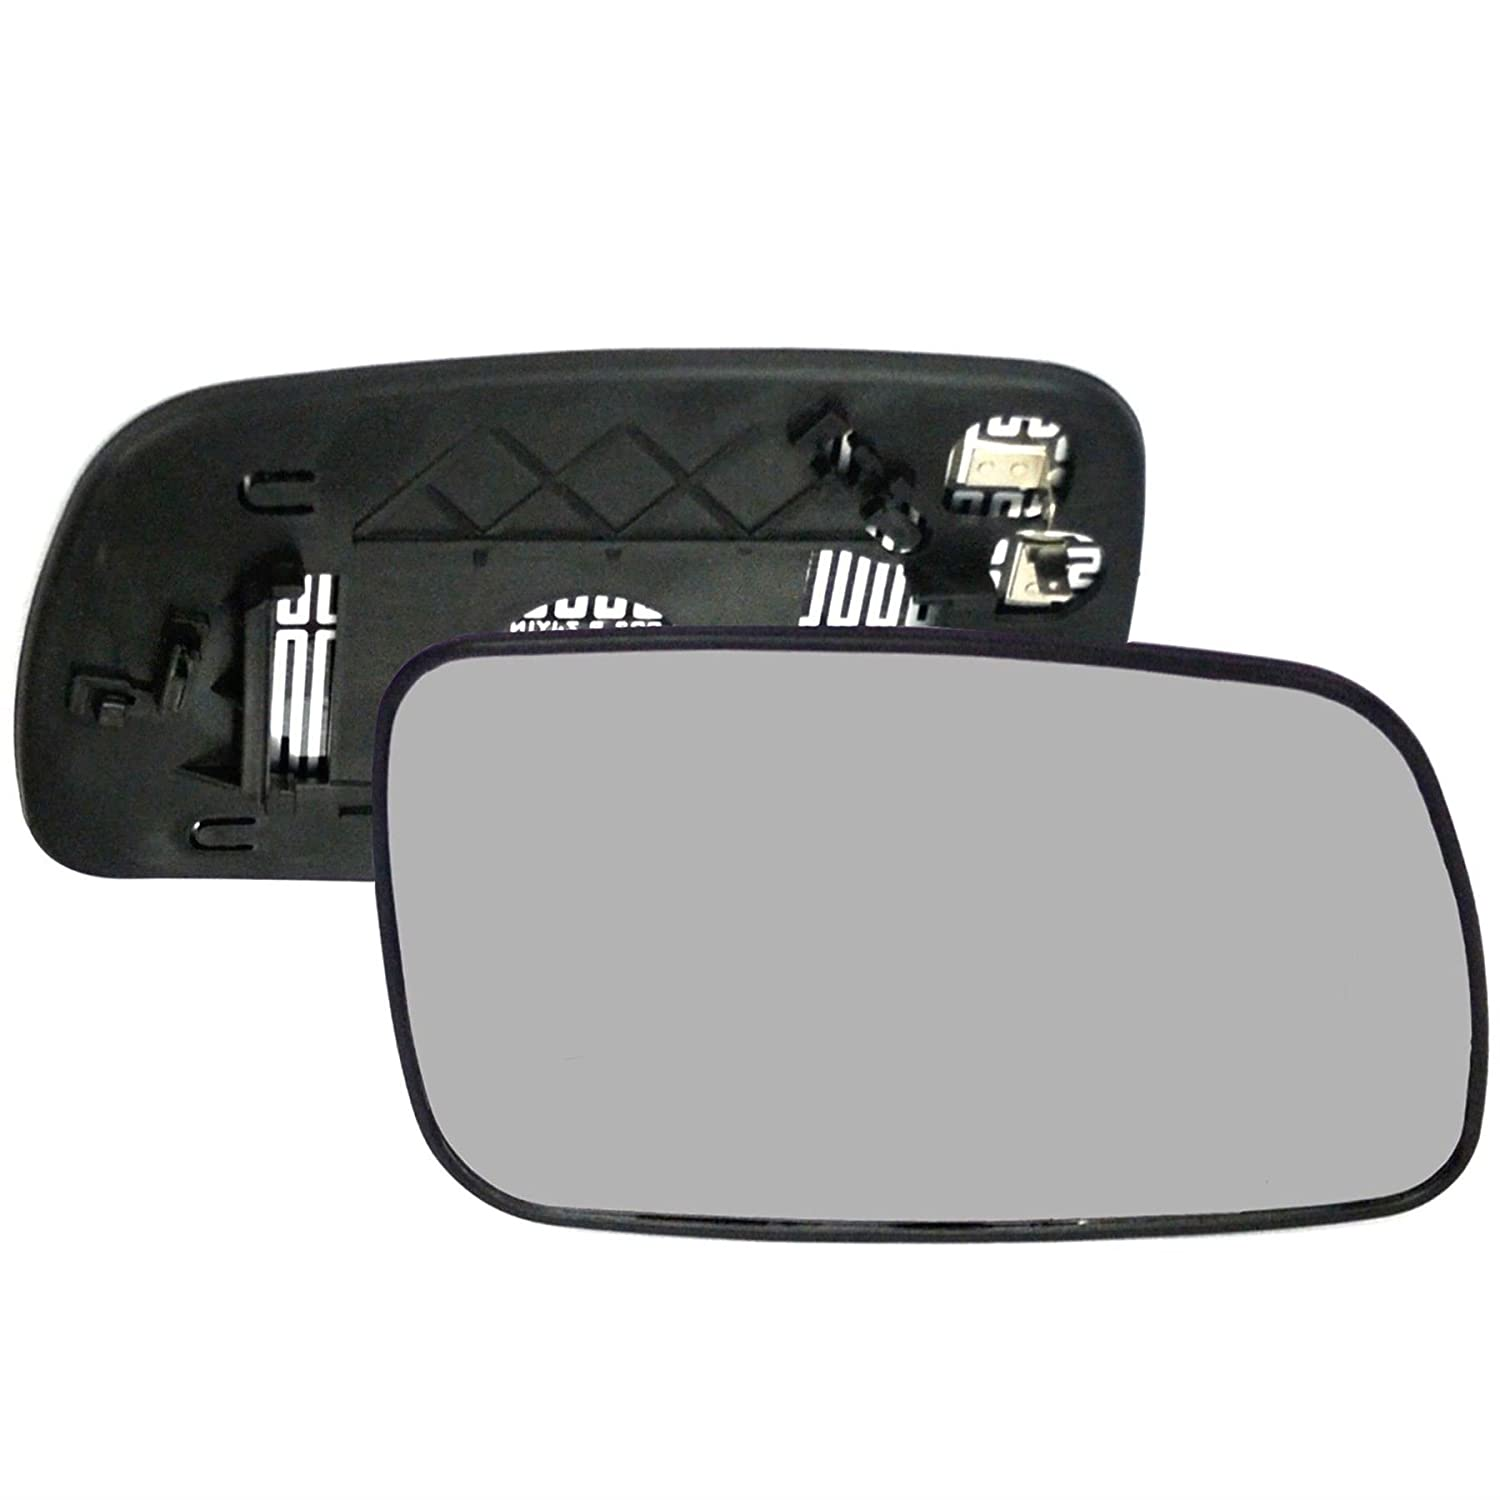 Driver right hand side Heated wing door Silver mirror glass with backing plate #C-SHY//R-TAAVS03 Clip On